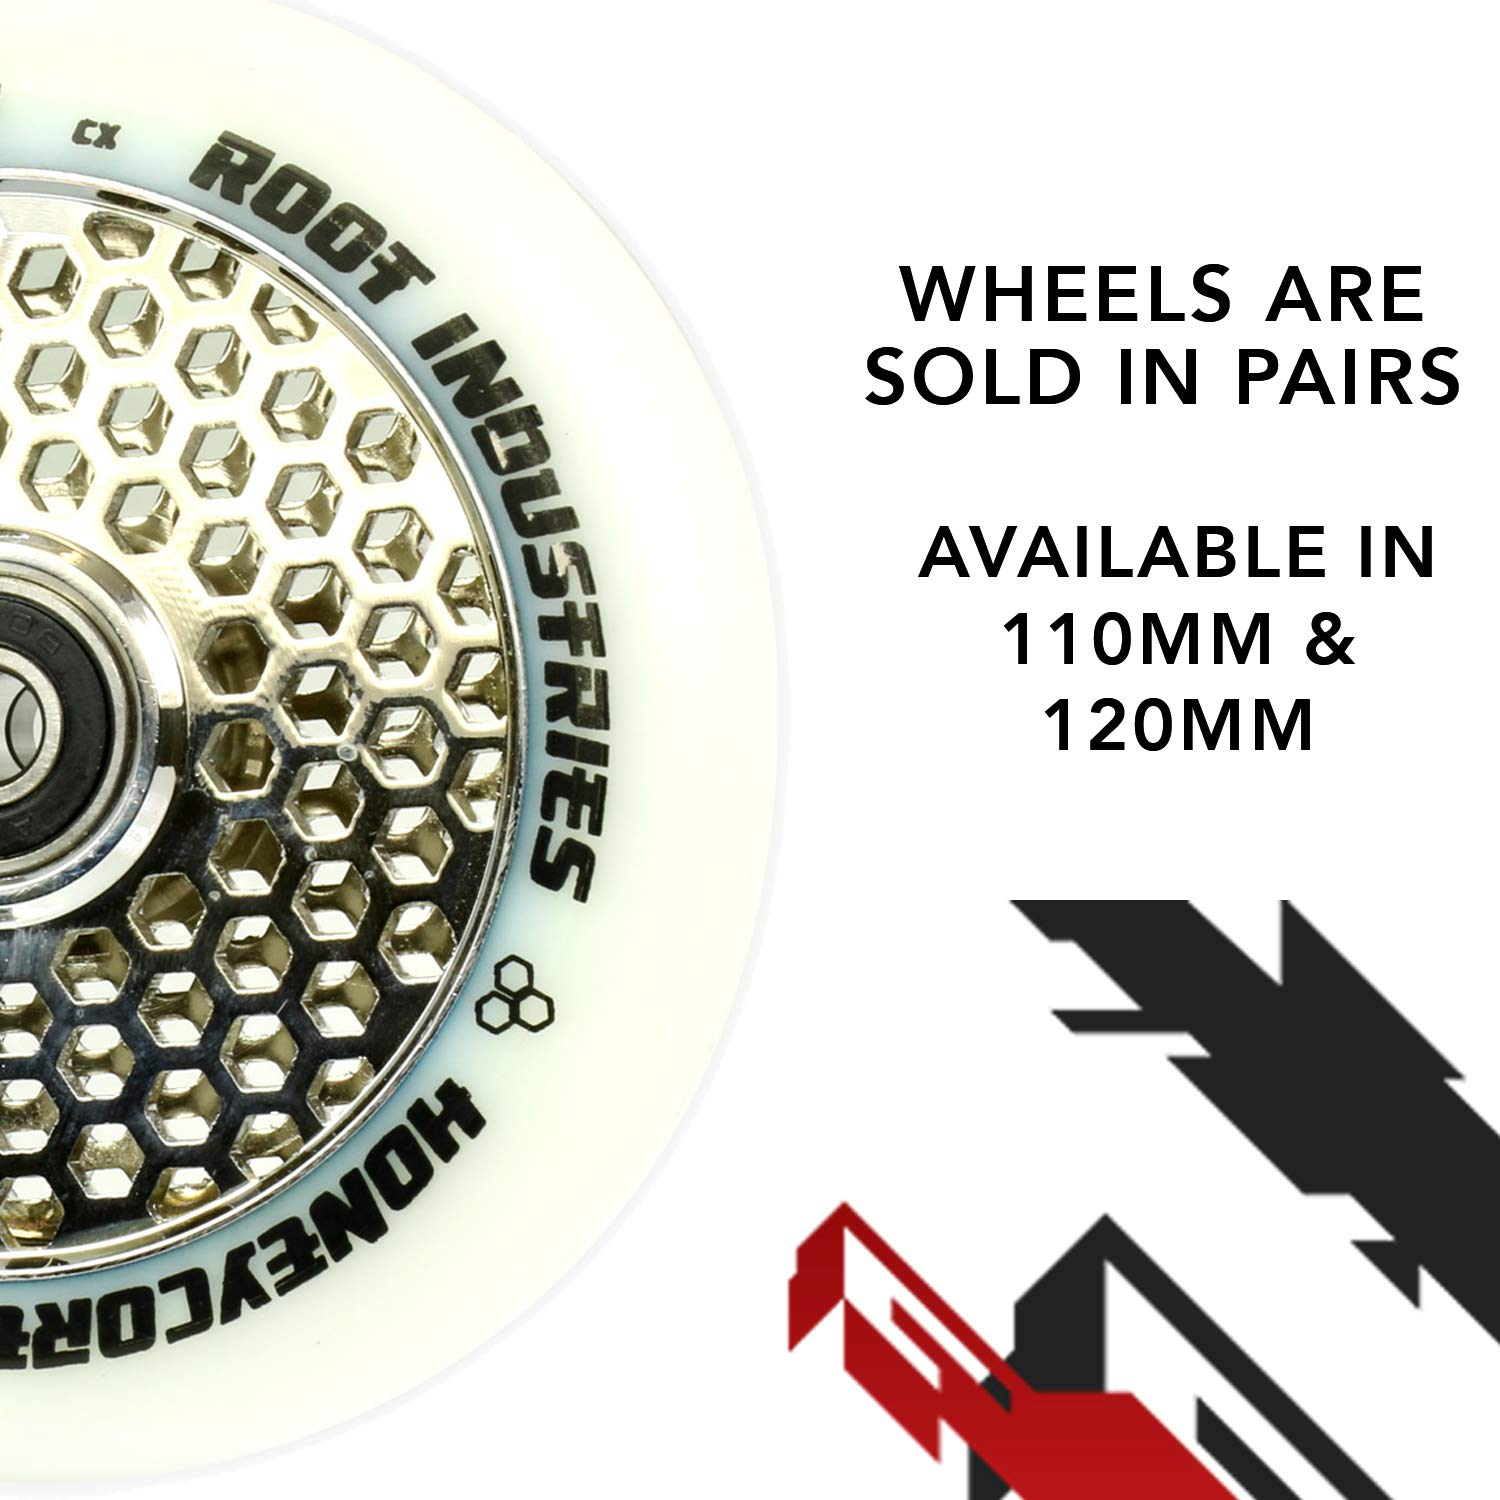 Scooter Wheels 120mm Honeycore – 120mm Scooter Wheels – Honeycomb Scooter Wheels – Pro Scooter Wheels – 24mm x 110mm – Bearings Installed – 90 Day Warranty – Scooter for Kids – Scooter Parts